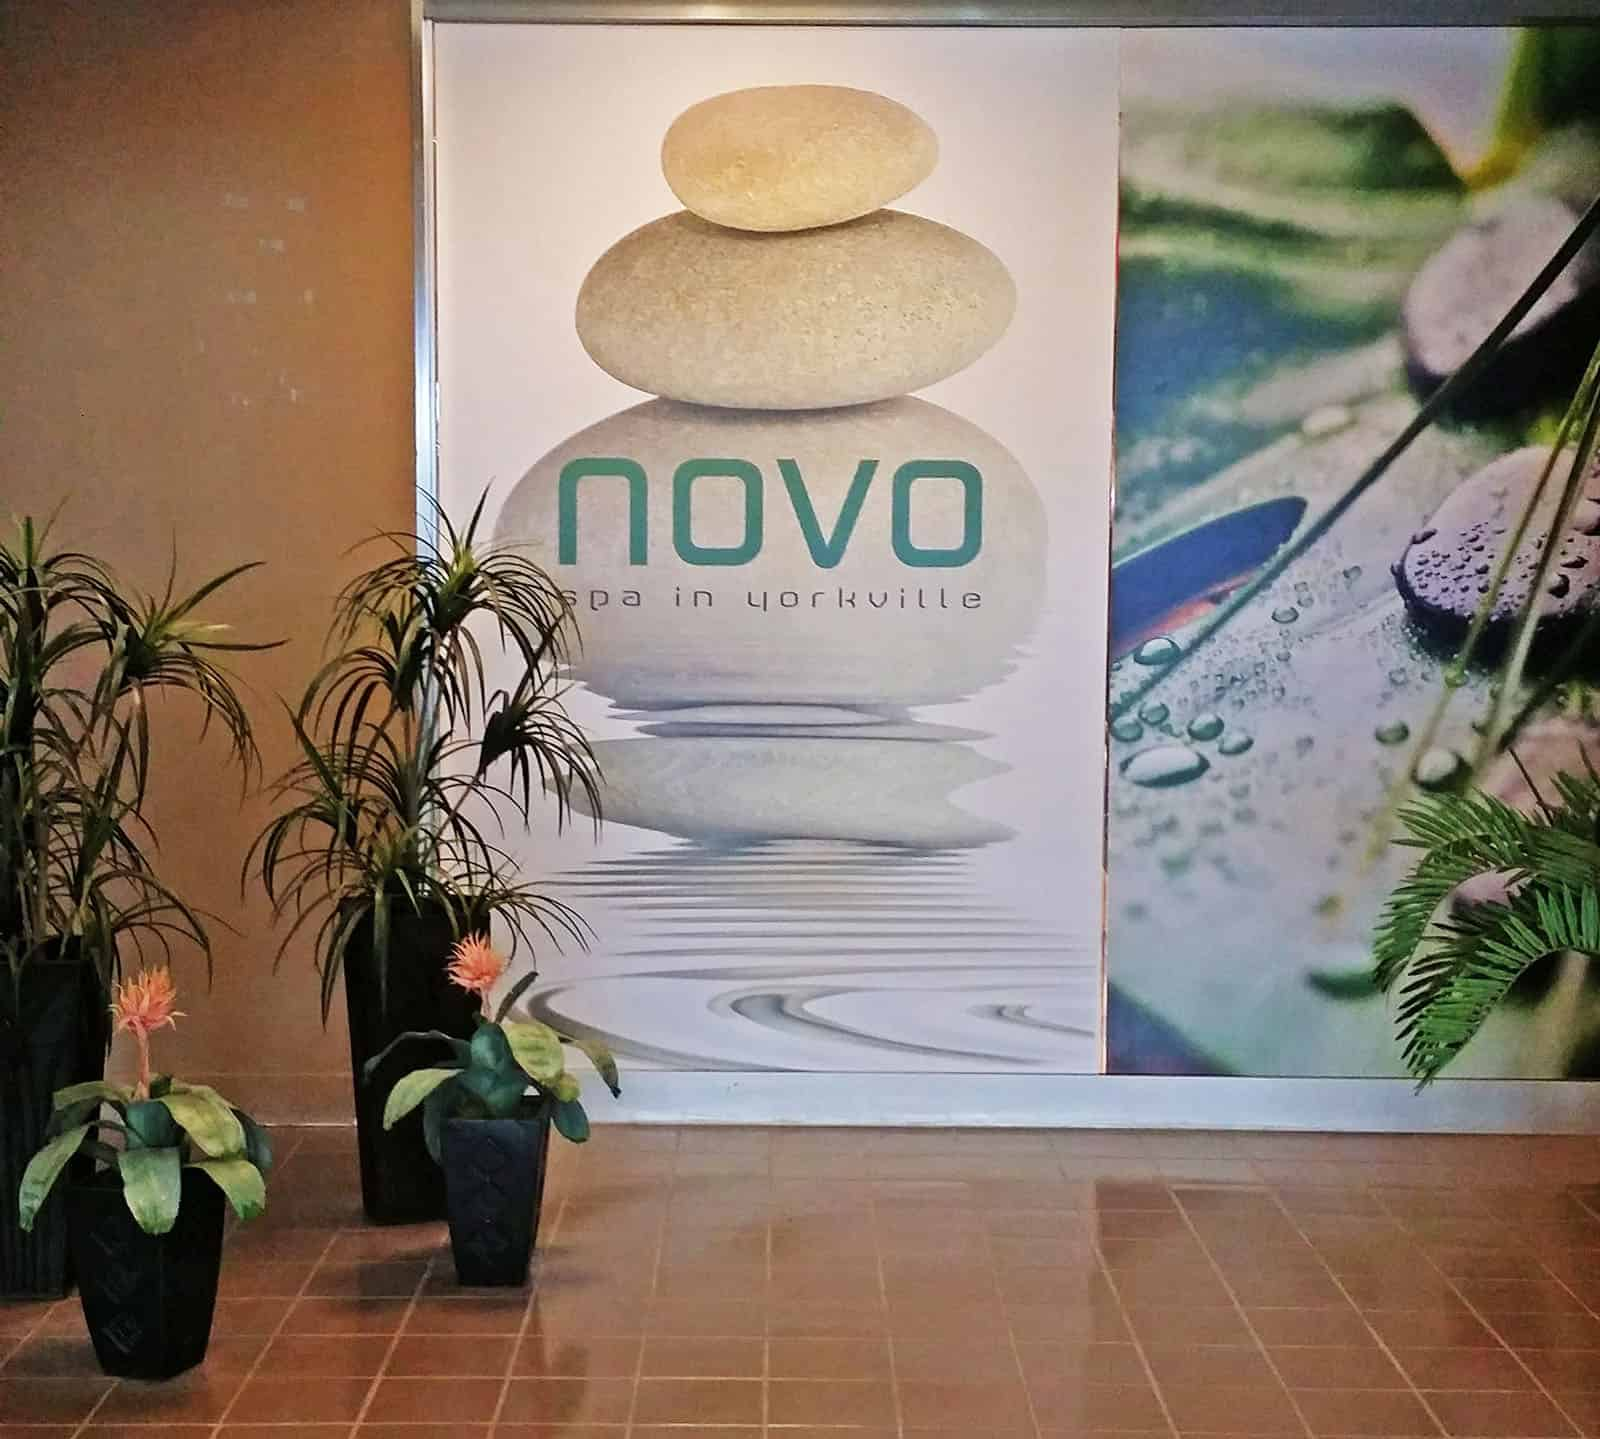 Breakaway Experiences and Novo Spa